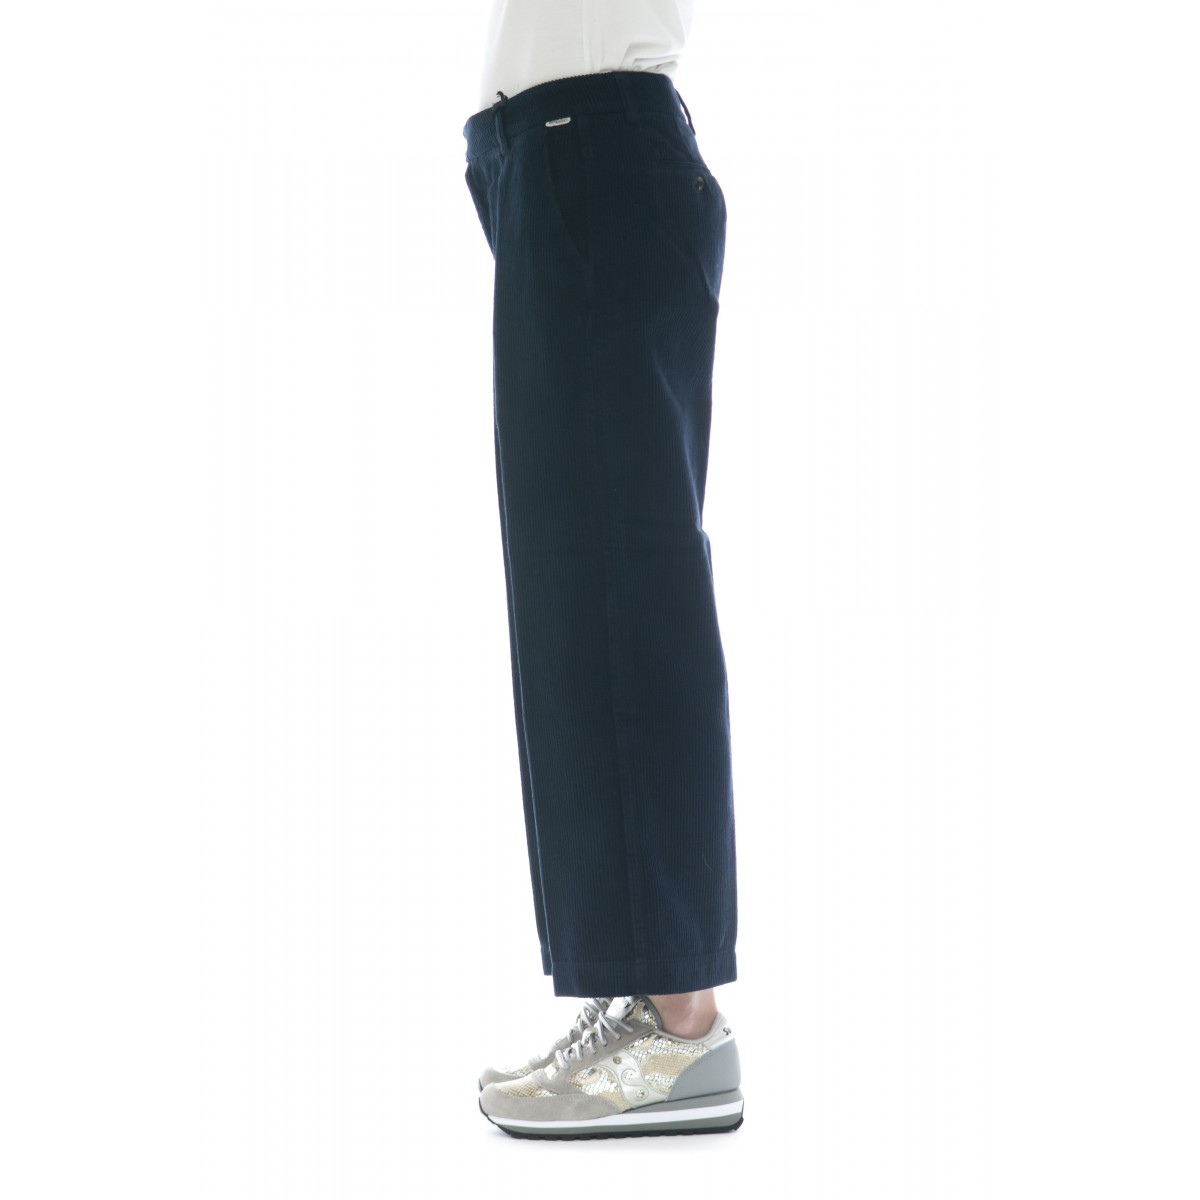 Pantalone donna - Lais cut vellutto 500 righe